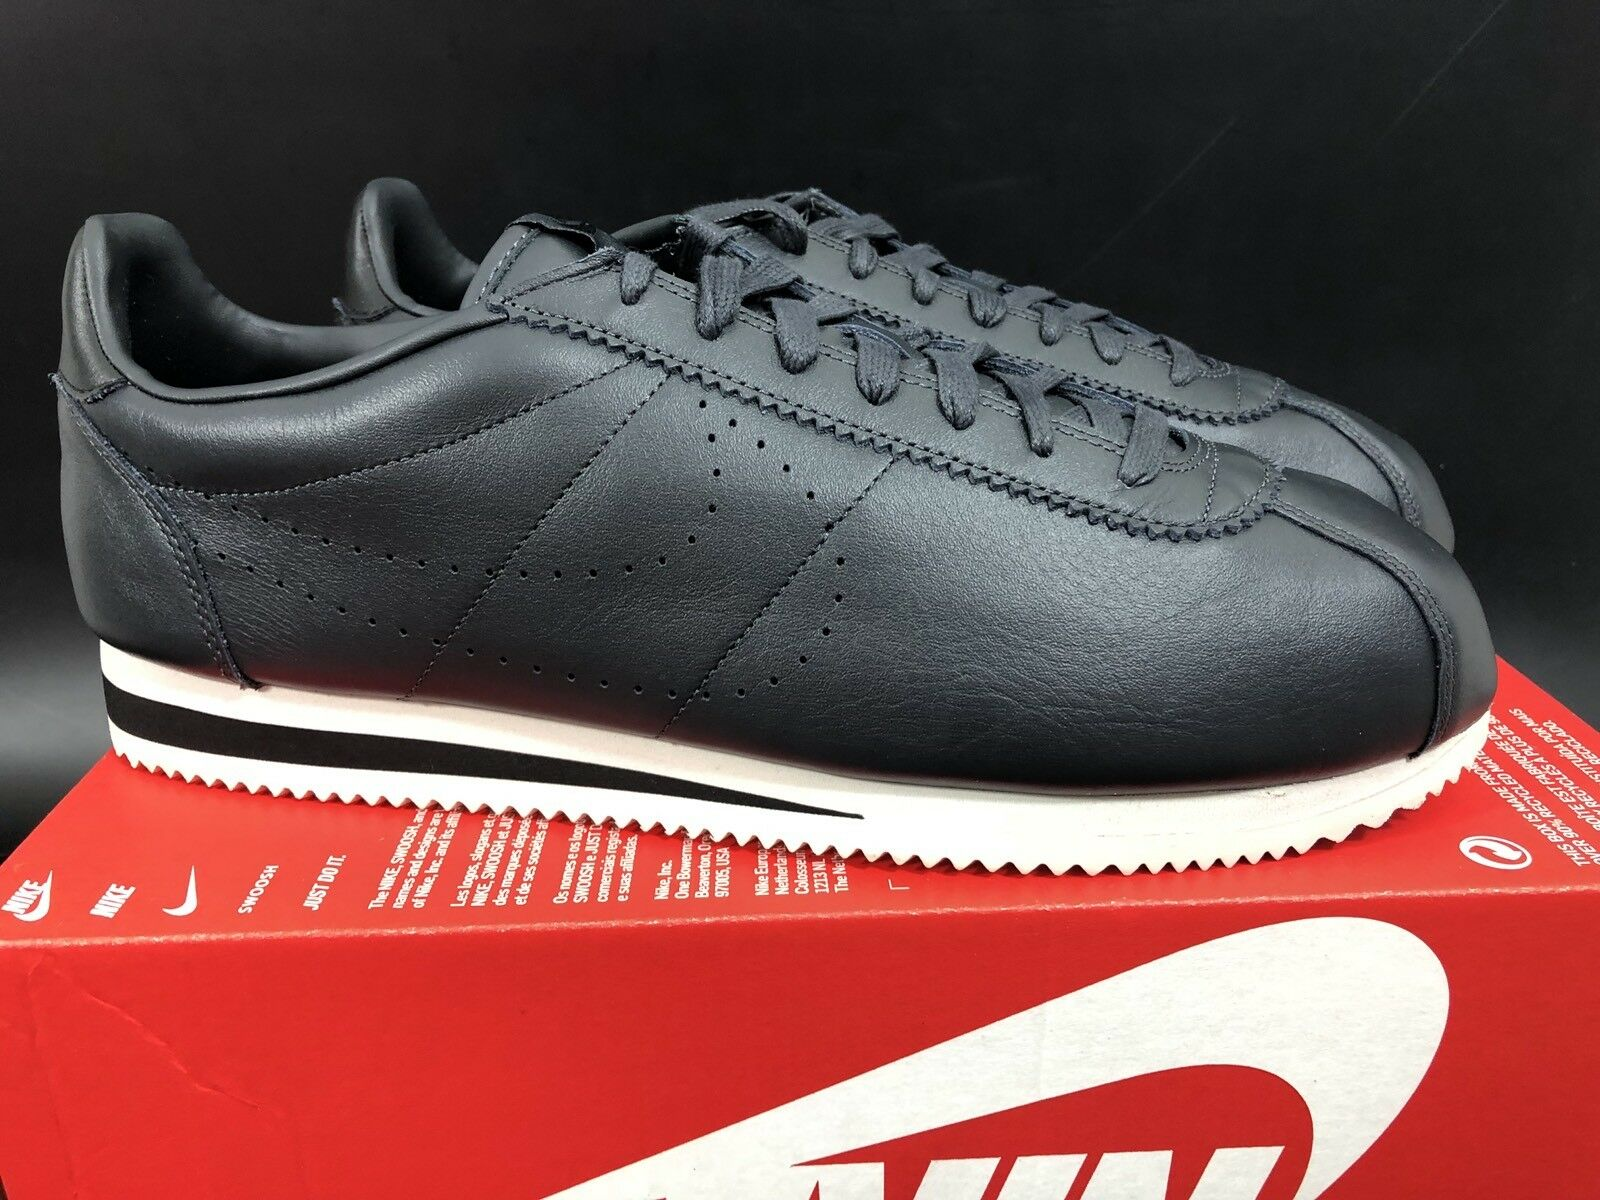 NIKE Taille CLASSIC CORTEZ LEATHER PREMIUM Taille NIKE UK12/US13/EUR47.5/CM31 861677-008 61a54b